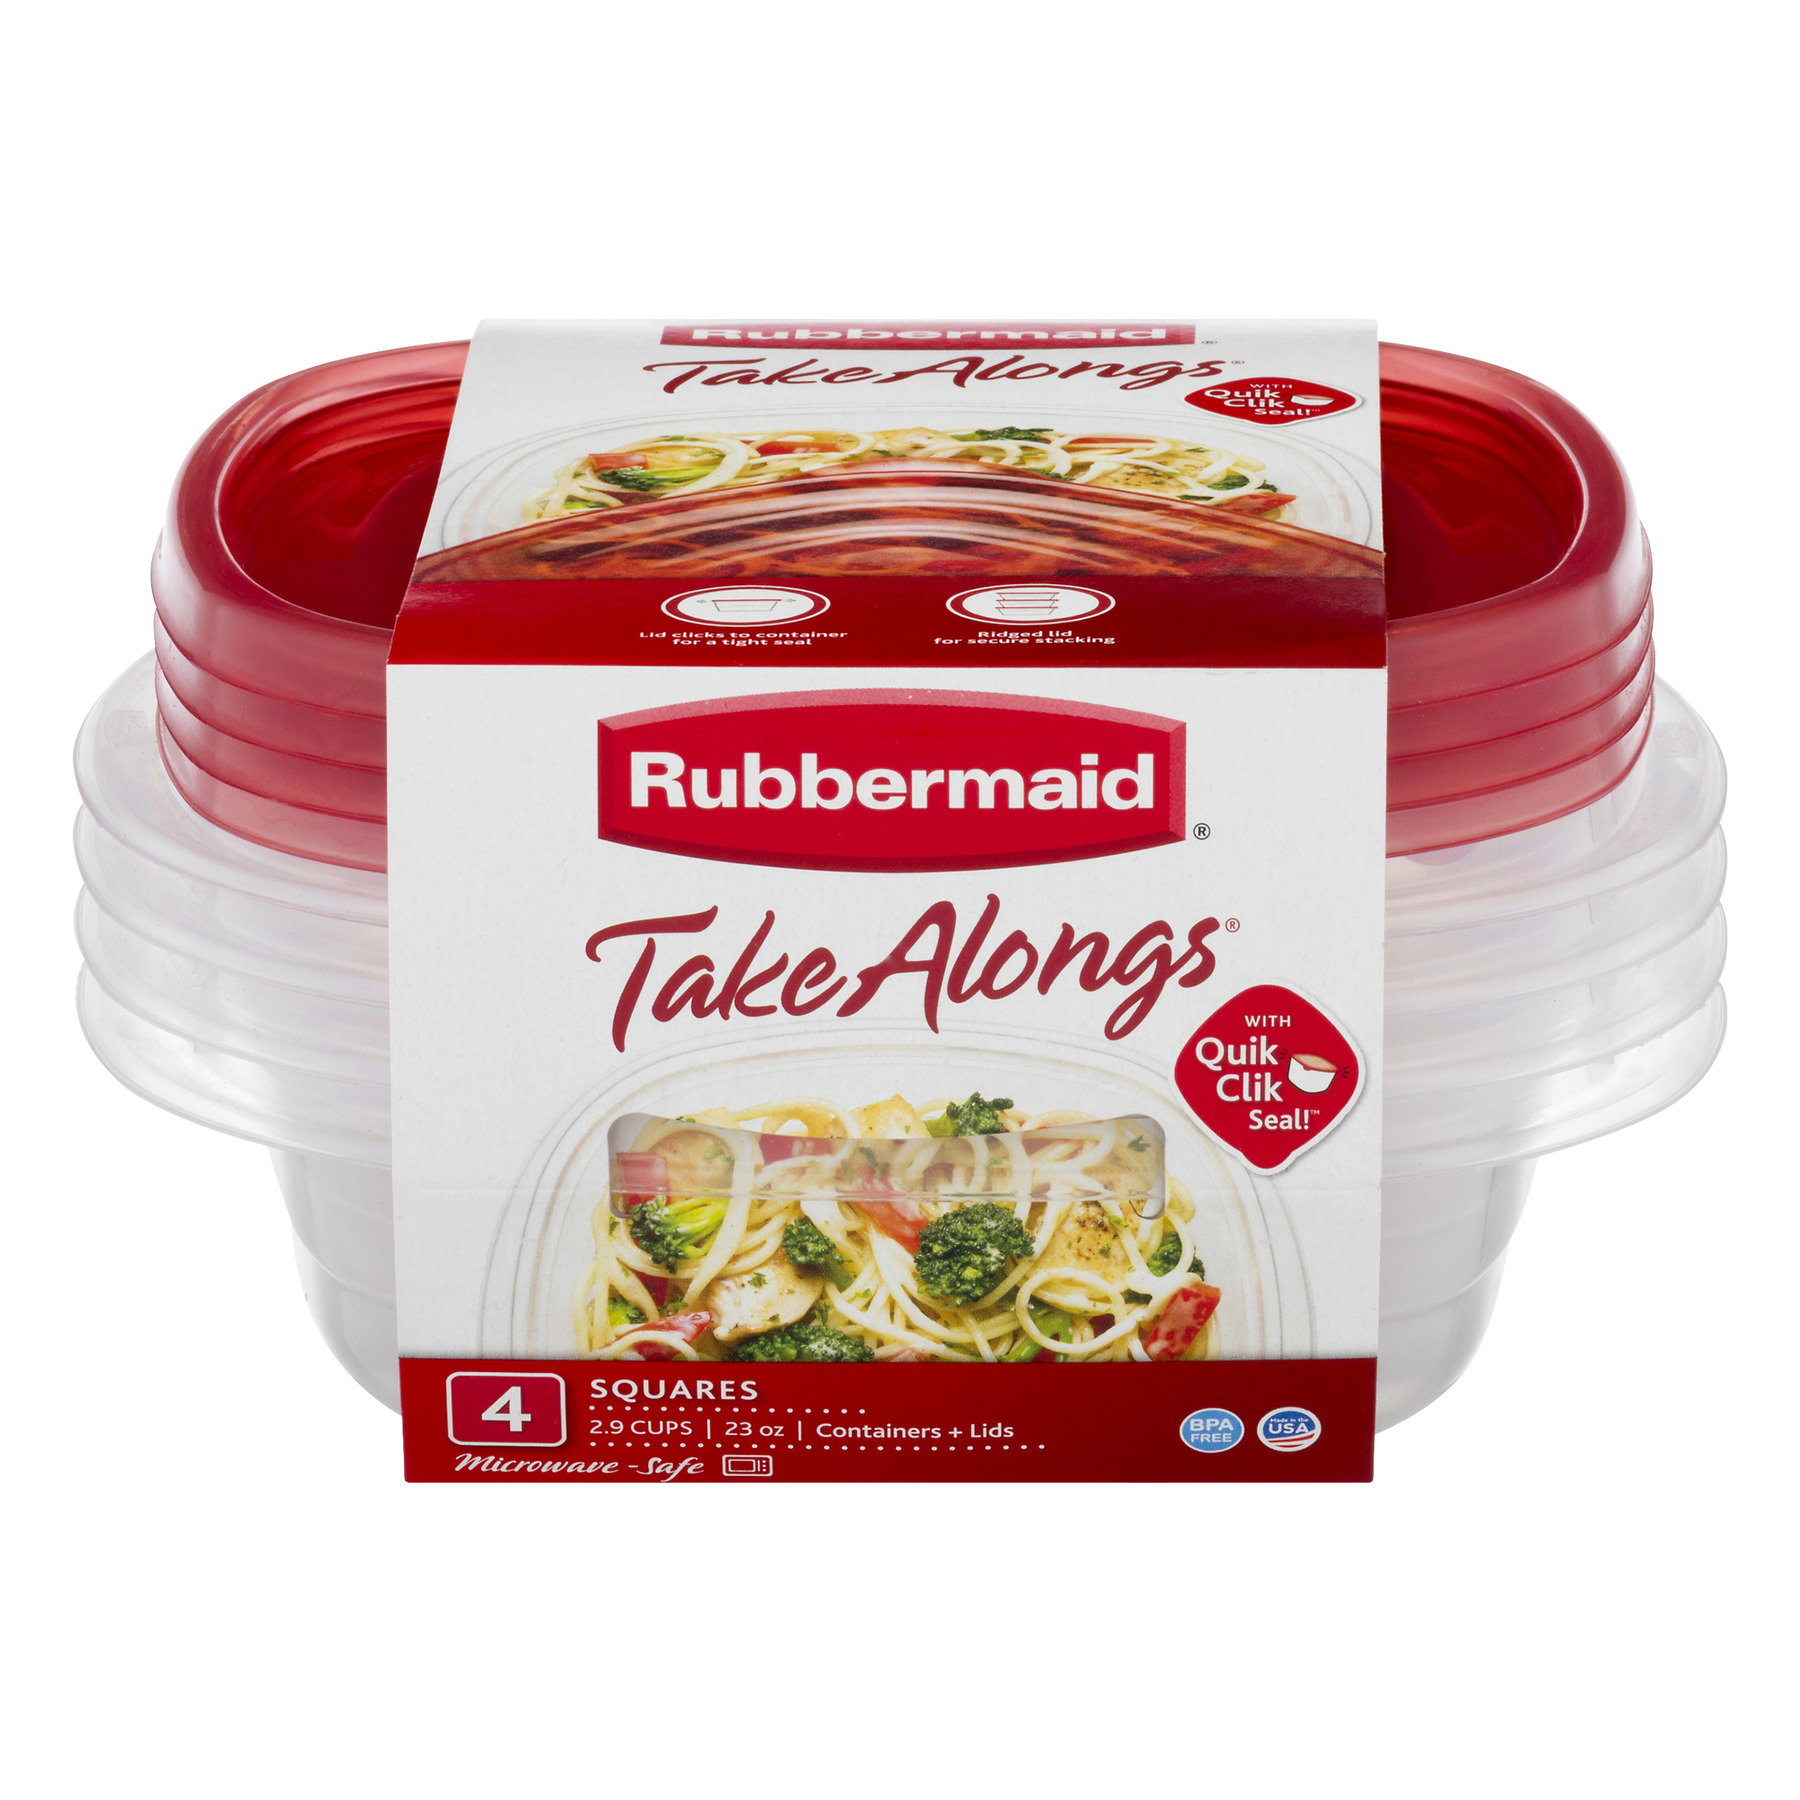 Rubbermaid Take-Along Square, 4-Pack